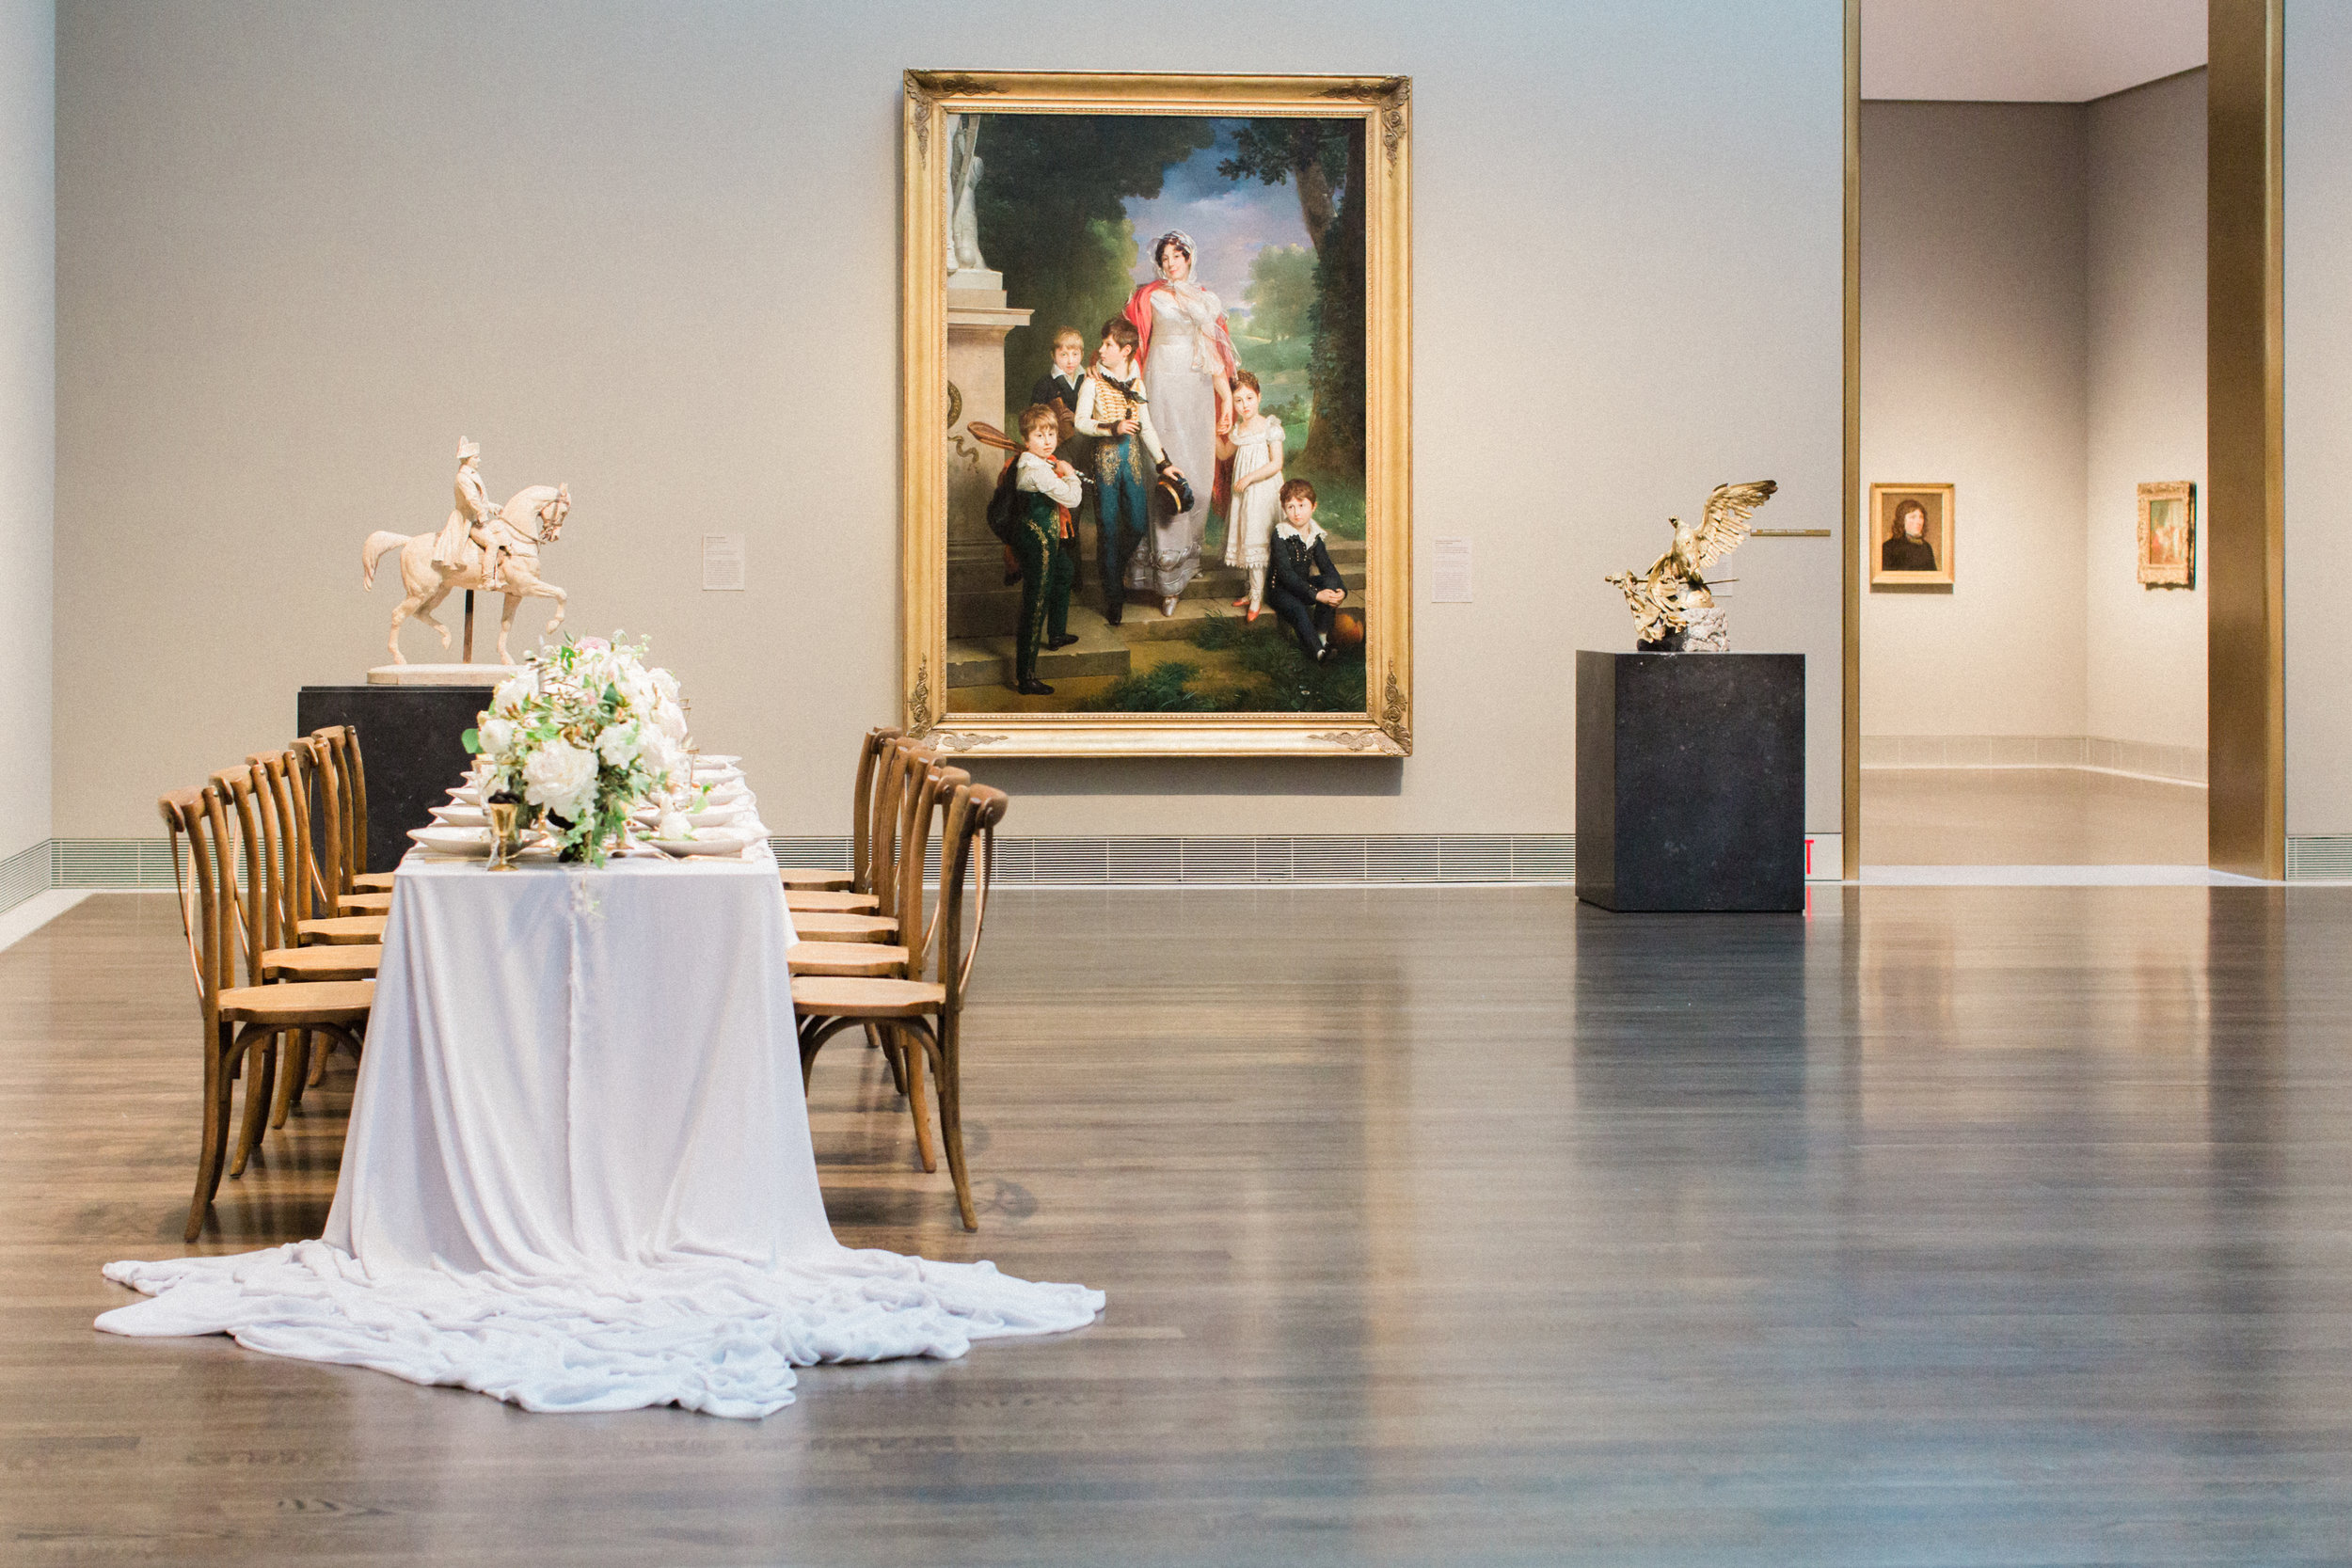 Fine_Art_Houston_Wedding_MFAH.jpg